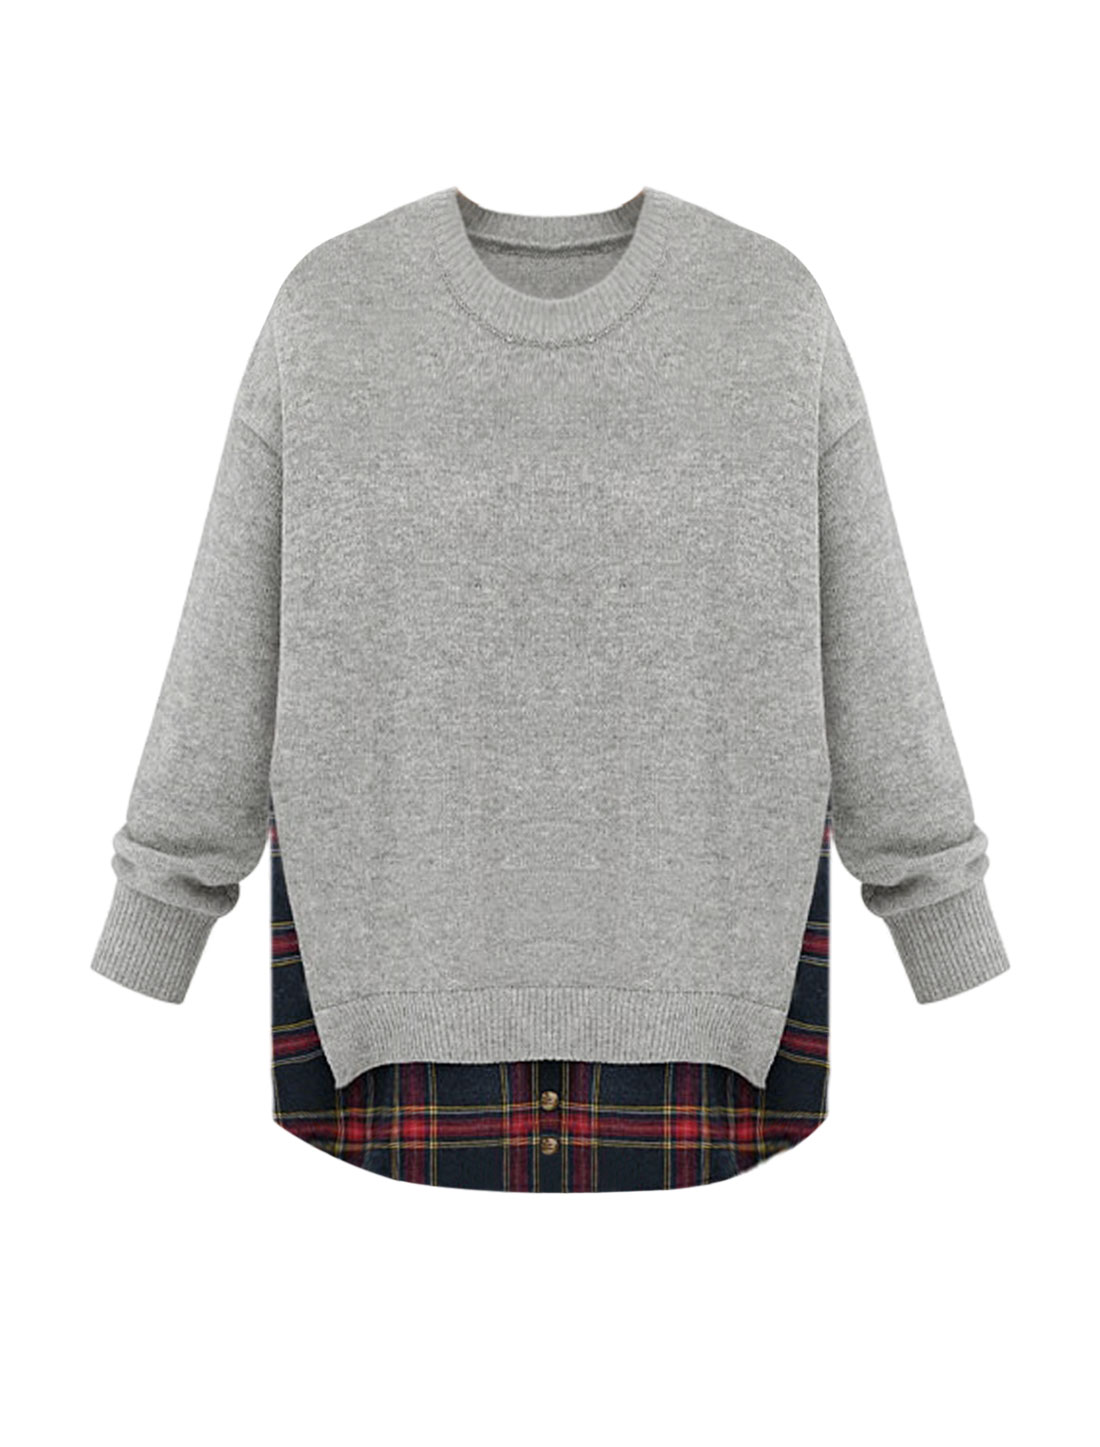 Woman Crew Neck Plaids Shirttail Layered Knit Shirt Gray XS